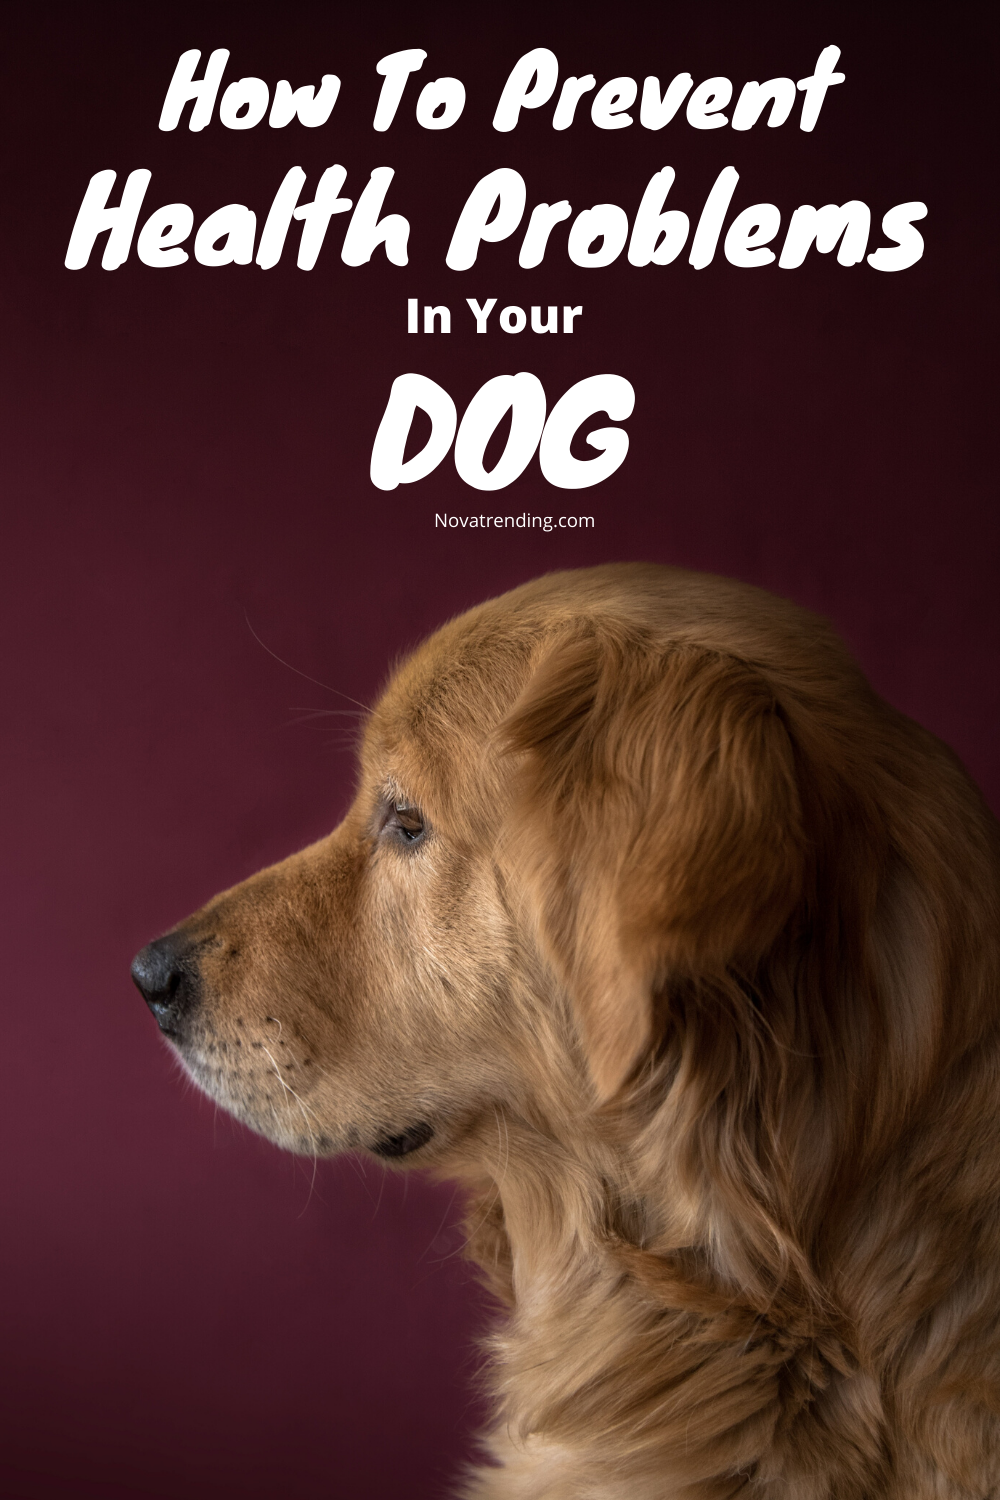 6 Tips To Prevent Health Problems In Dogs In 2020 With Images Dogs Embrace Pet Insurance Best Pet Insurance